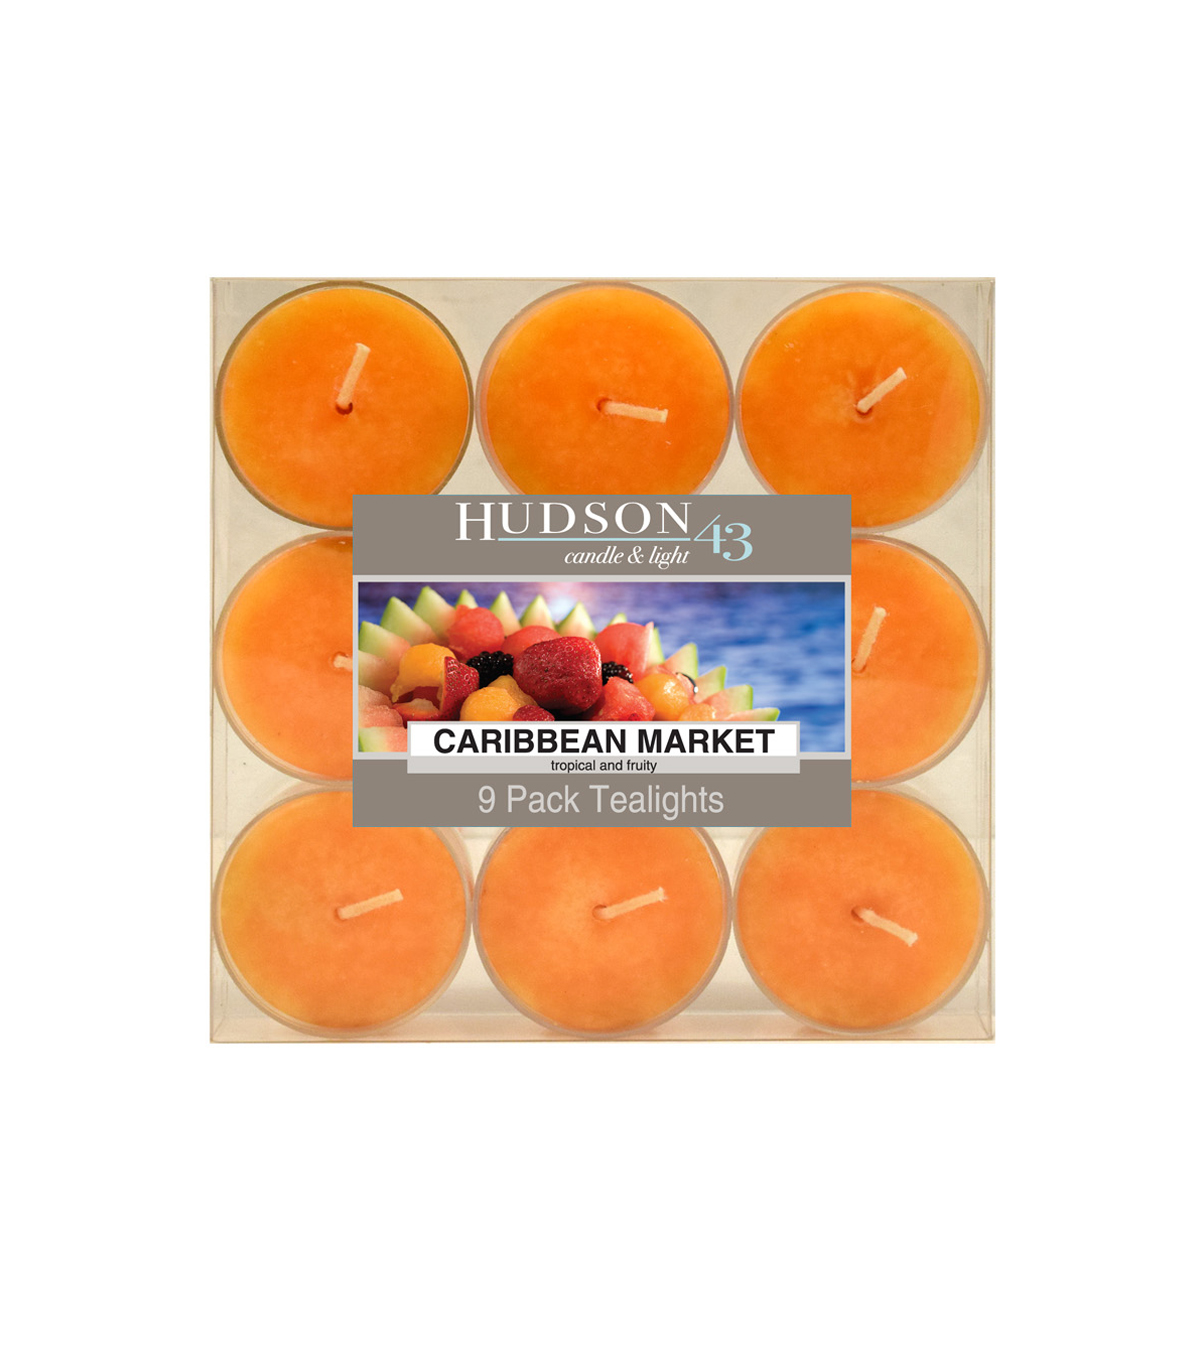 Hudson 43™ Candle & Light Collection 9 Pack Tealights Caribbean Market